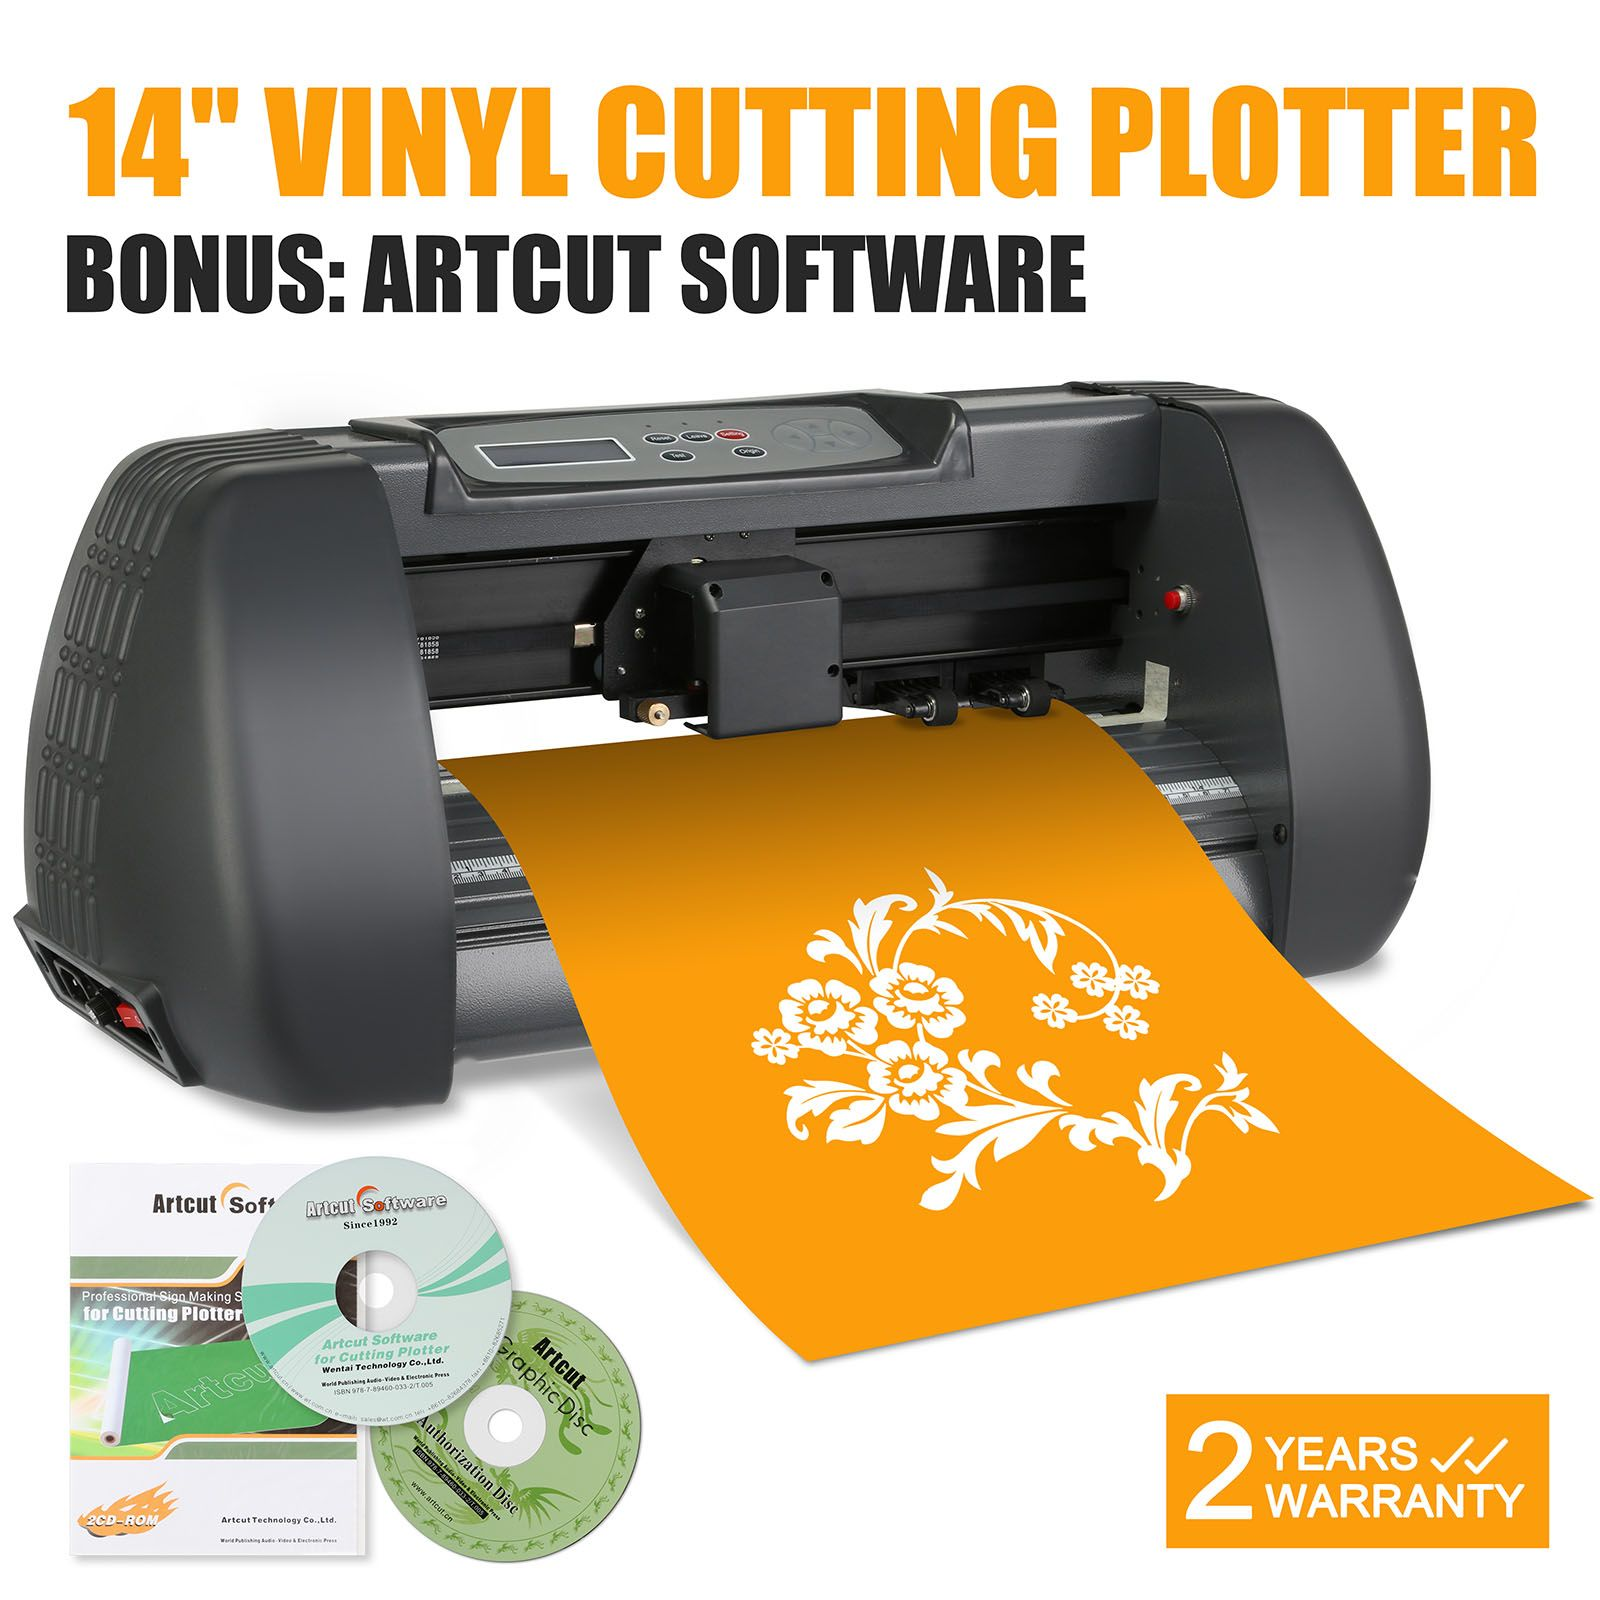 New Vinyl Cutter CuttingPlotter Machine Portable Artcut - Vinyl decal printing machine